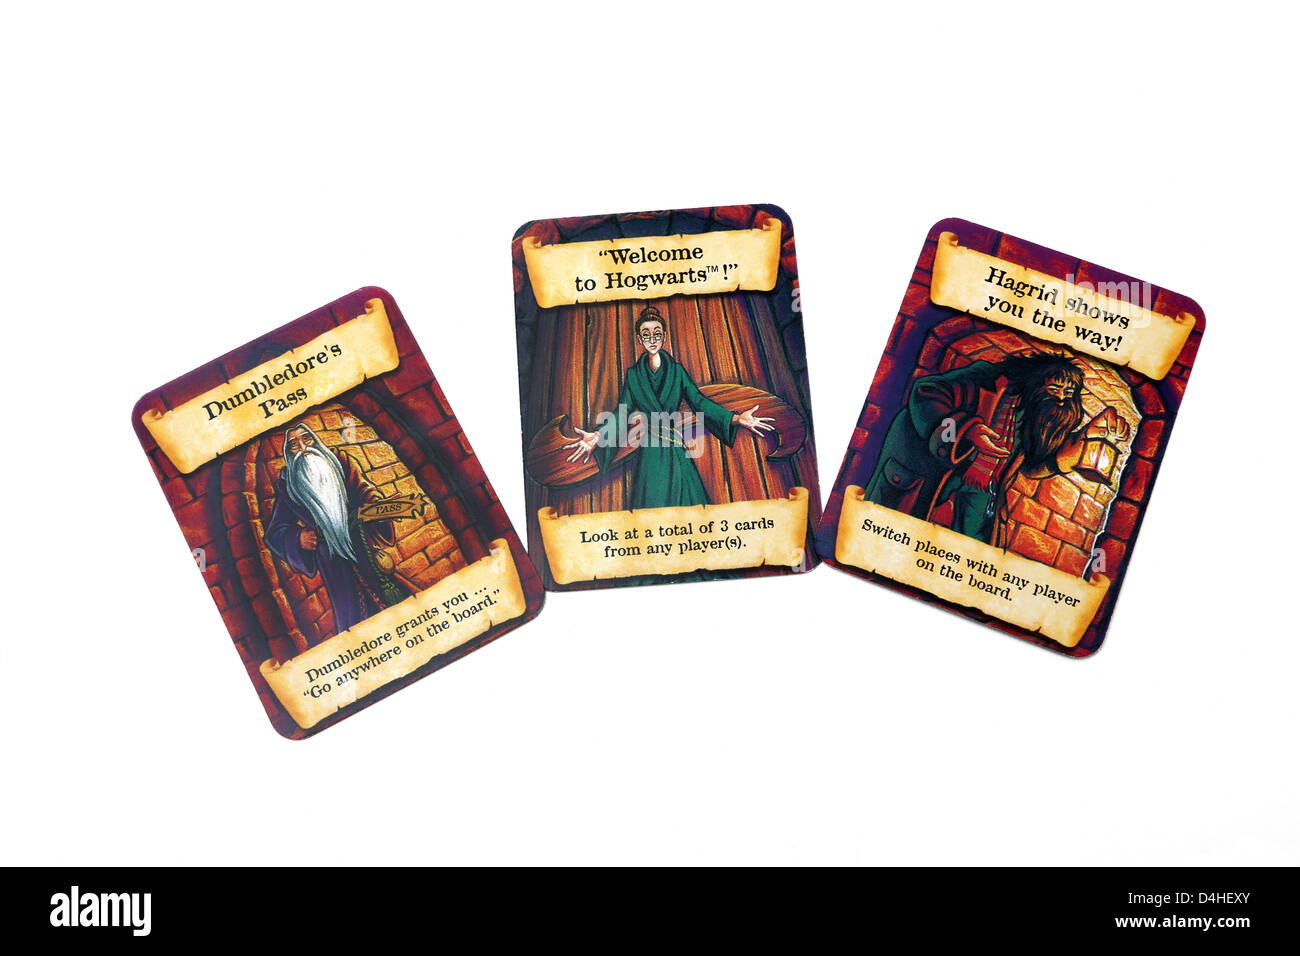 Harry Potter And The Philosopher's Stone Mystery At Hogwarts Boardgame Cards - Stock Image